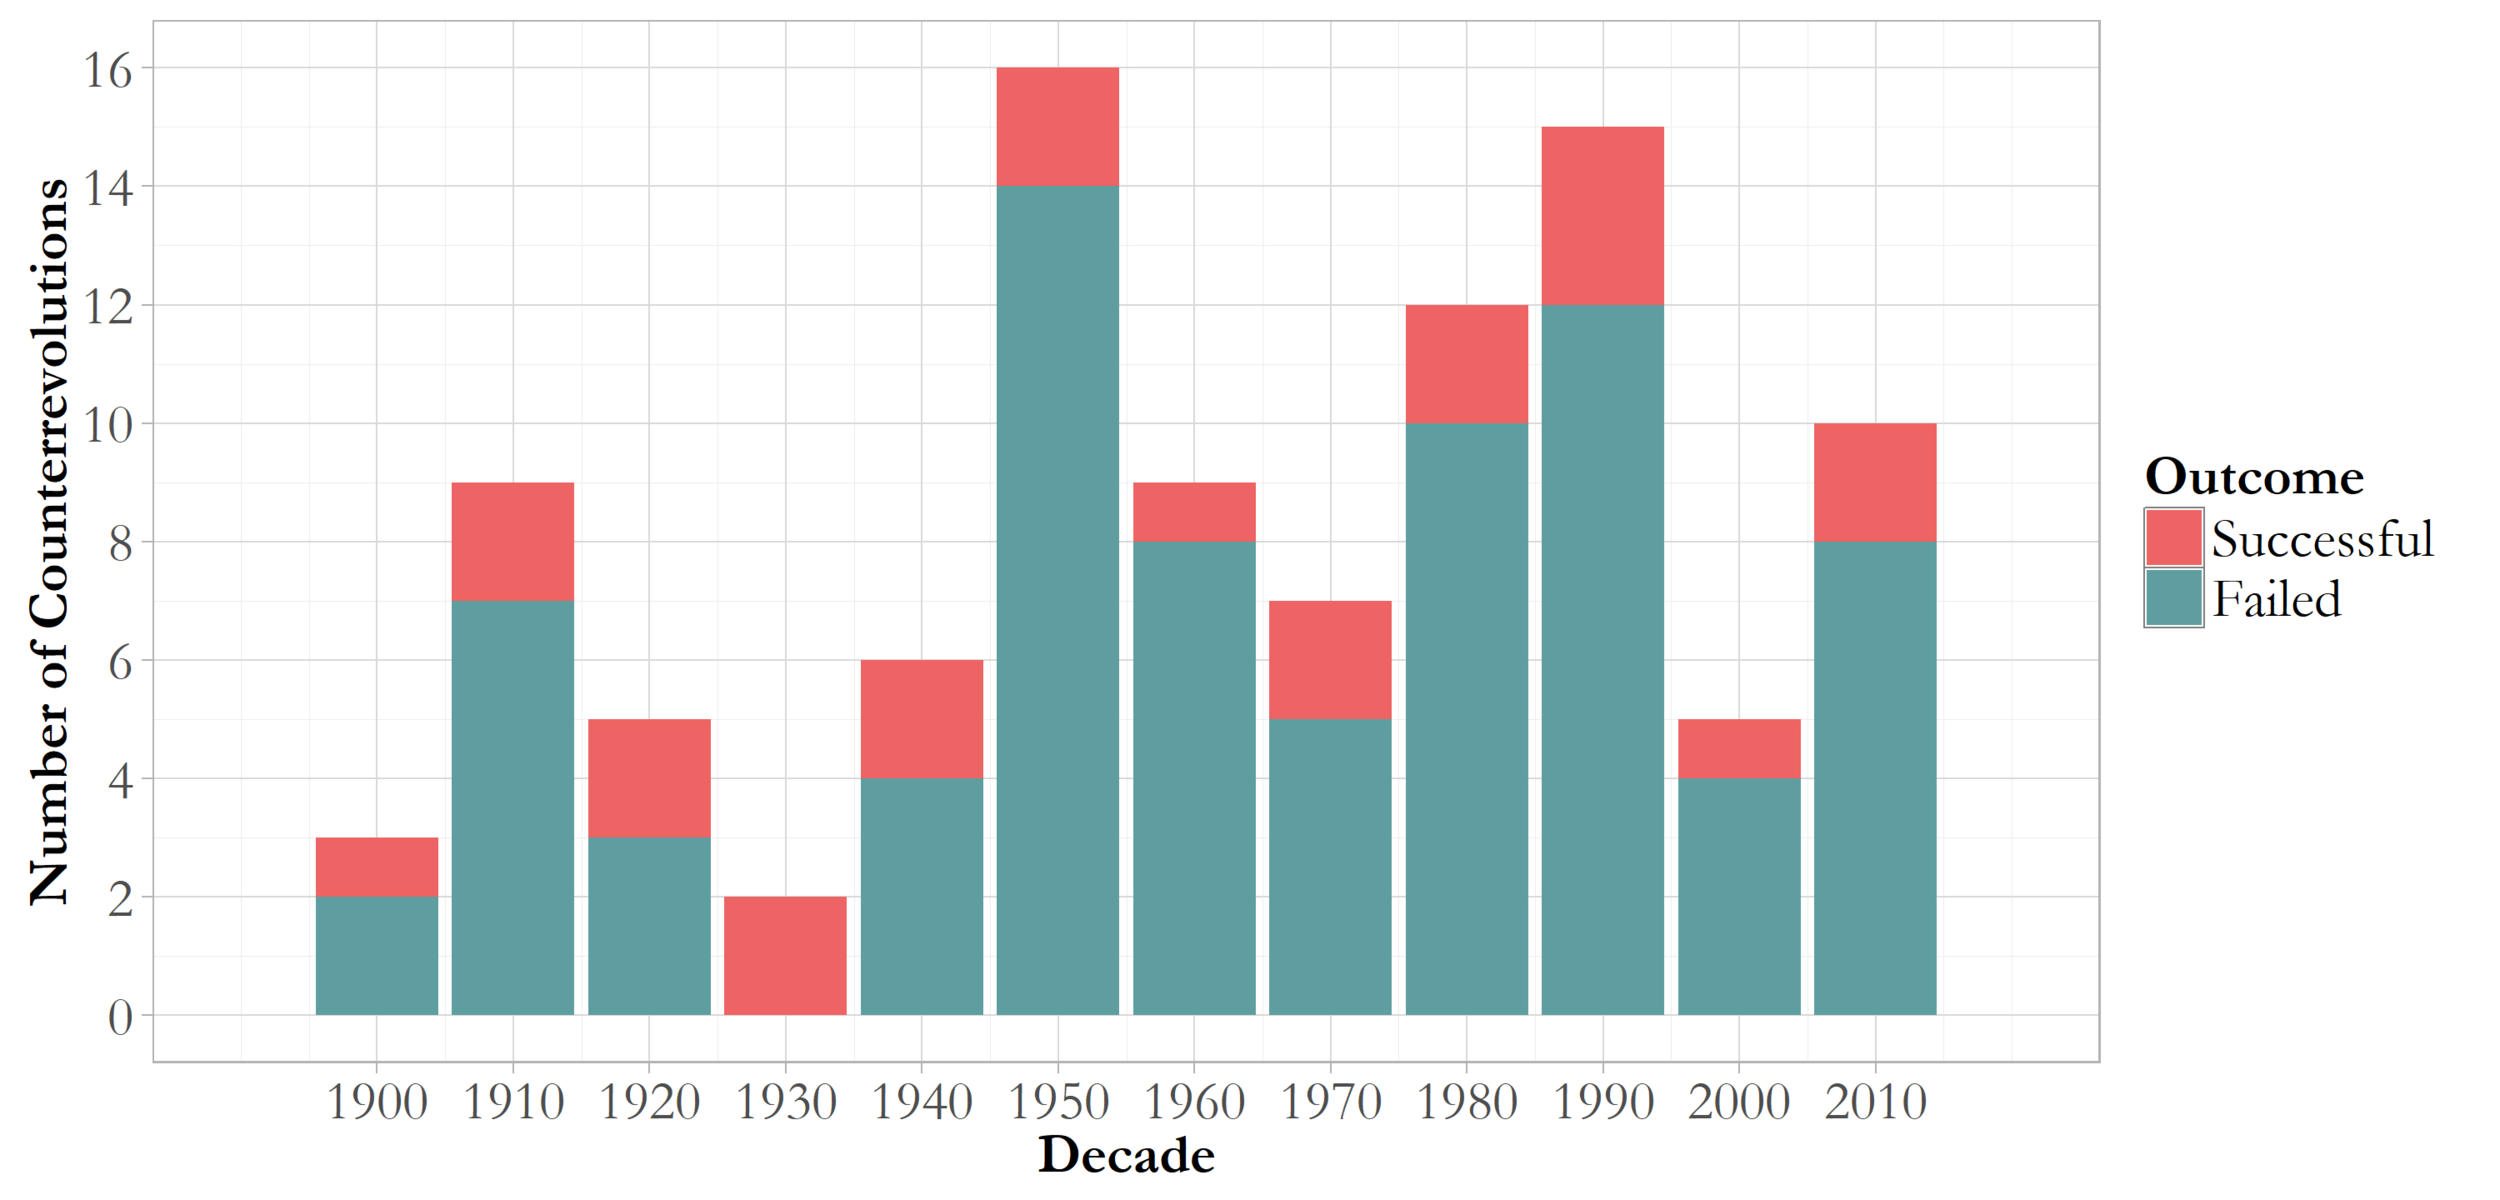 Historical trends in counterrevolution